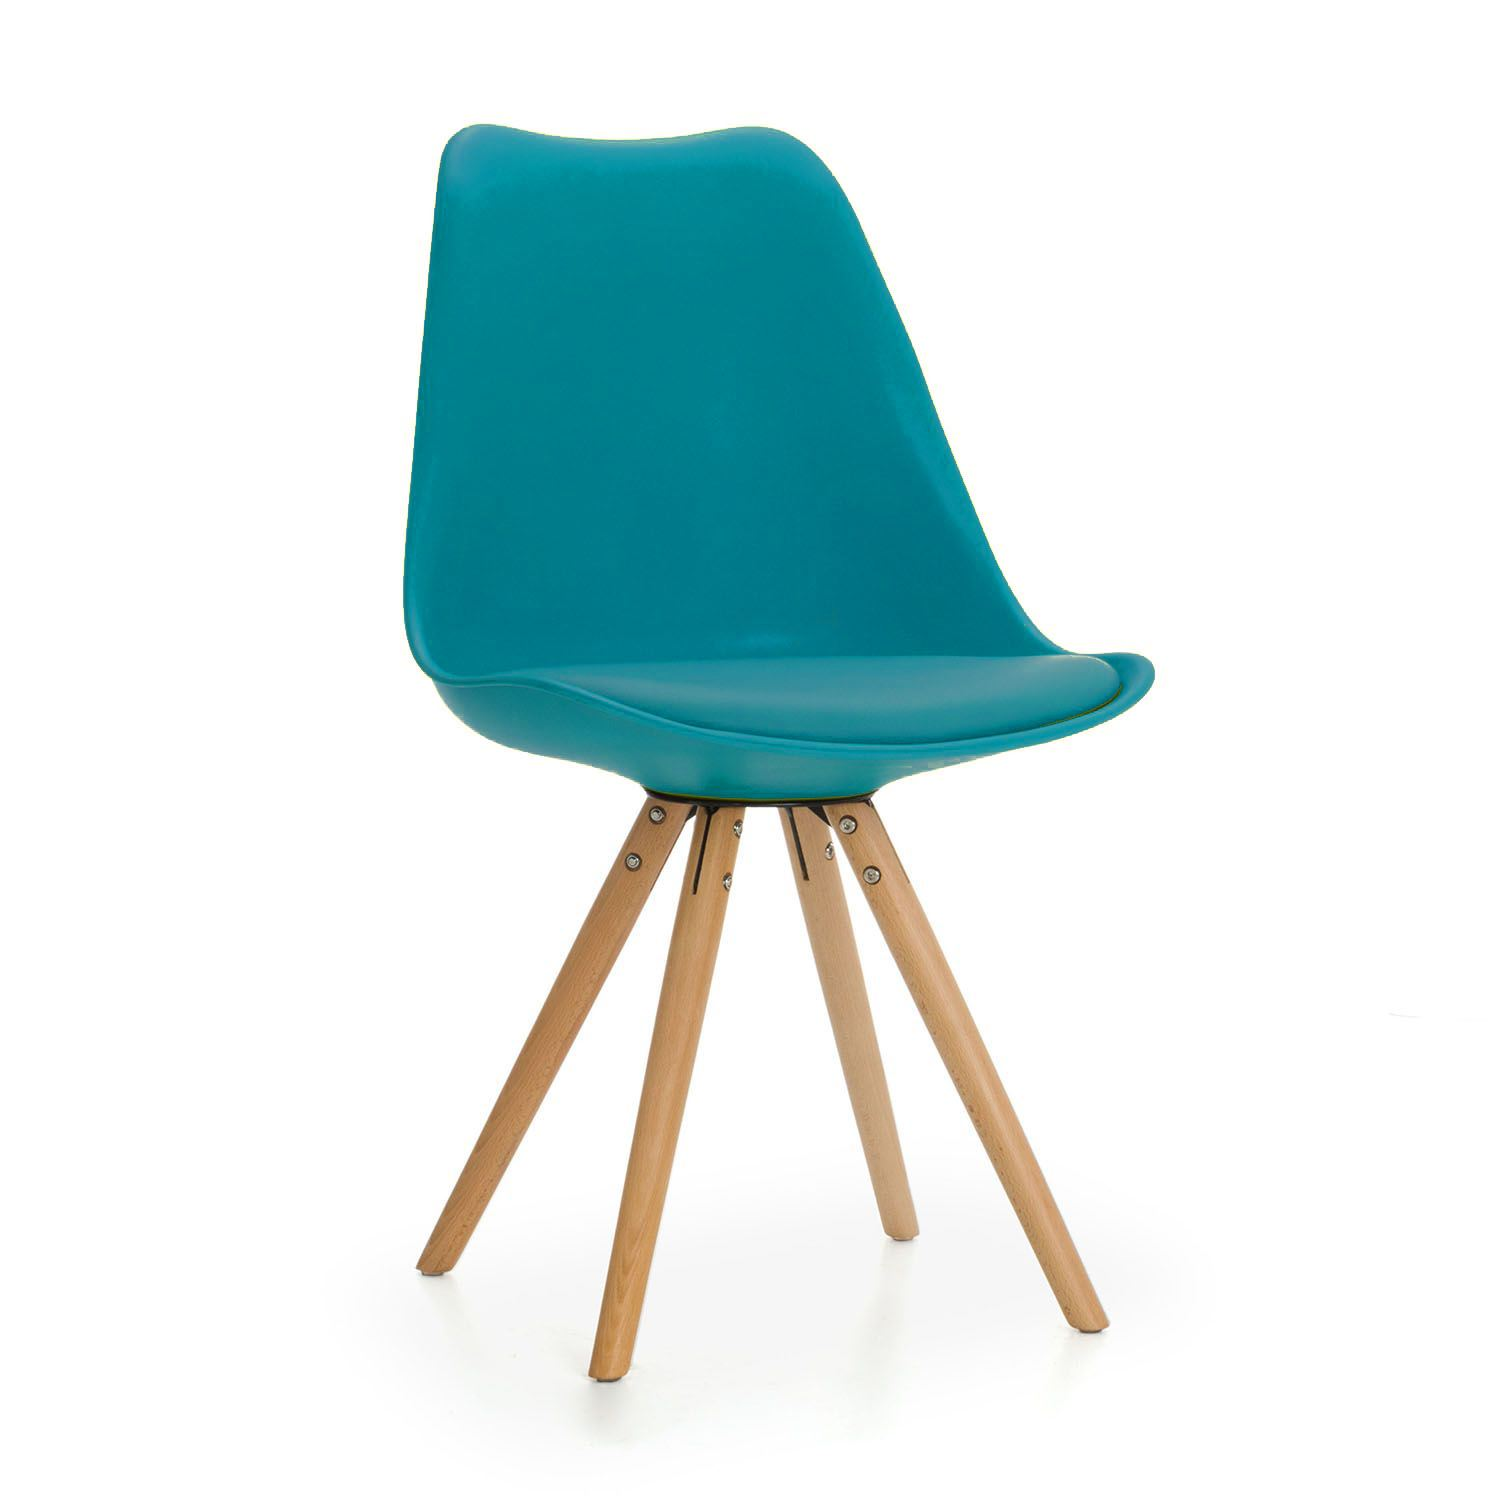 Tulip Star Dining chair with Cushioned Contemporary & Wood Legs